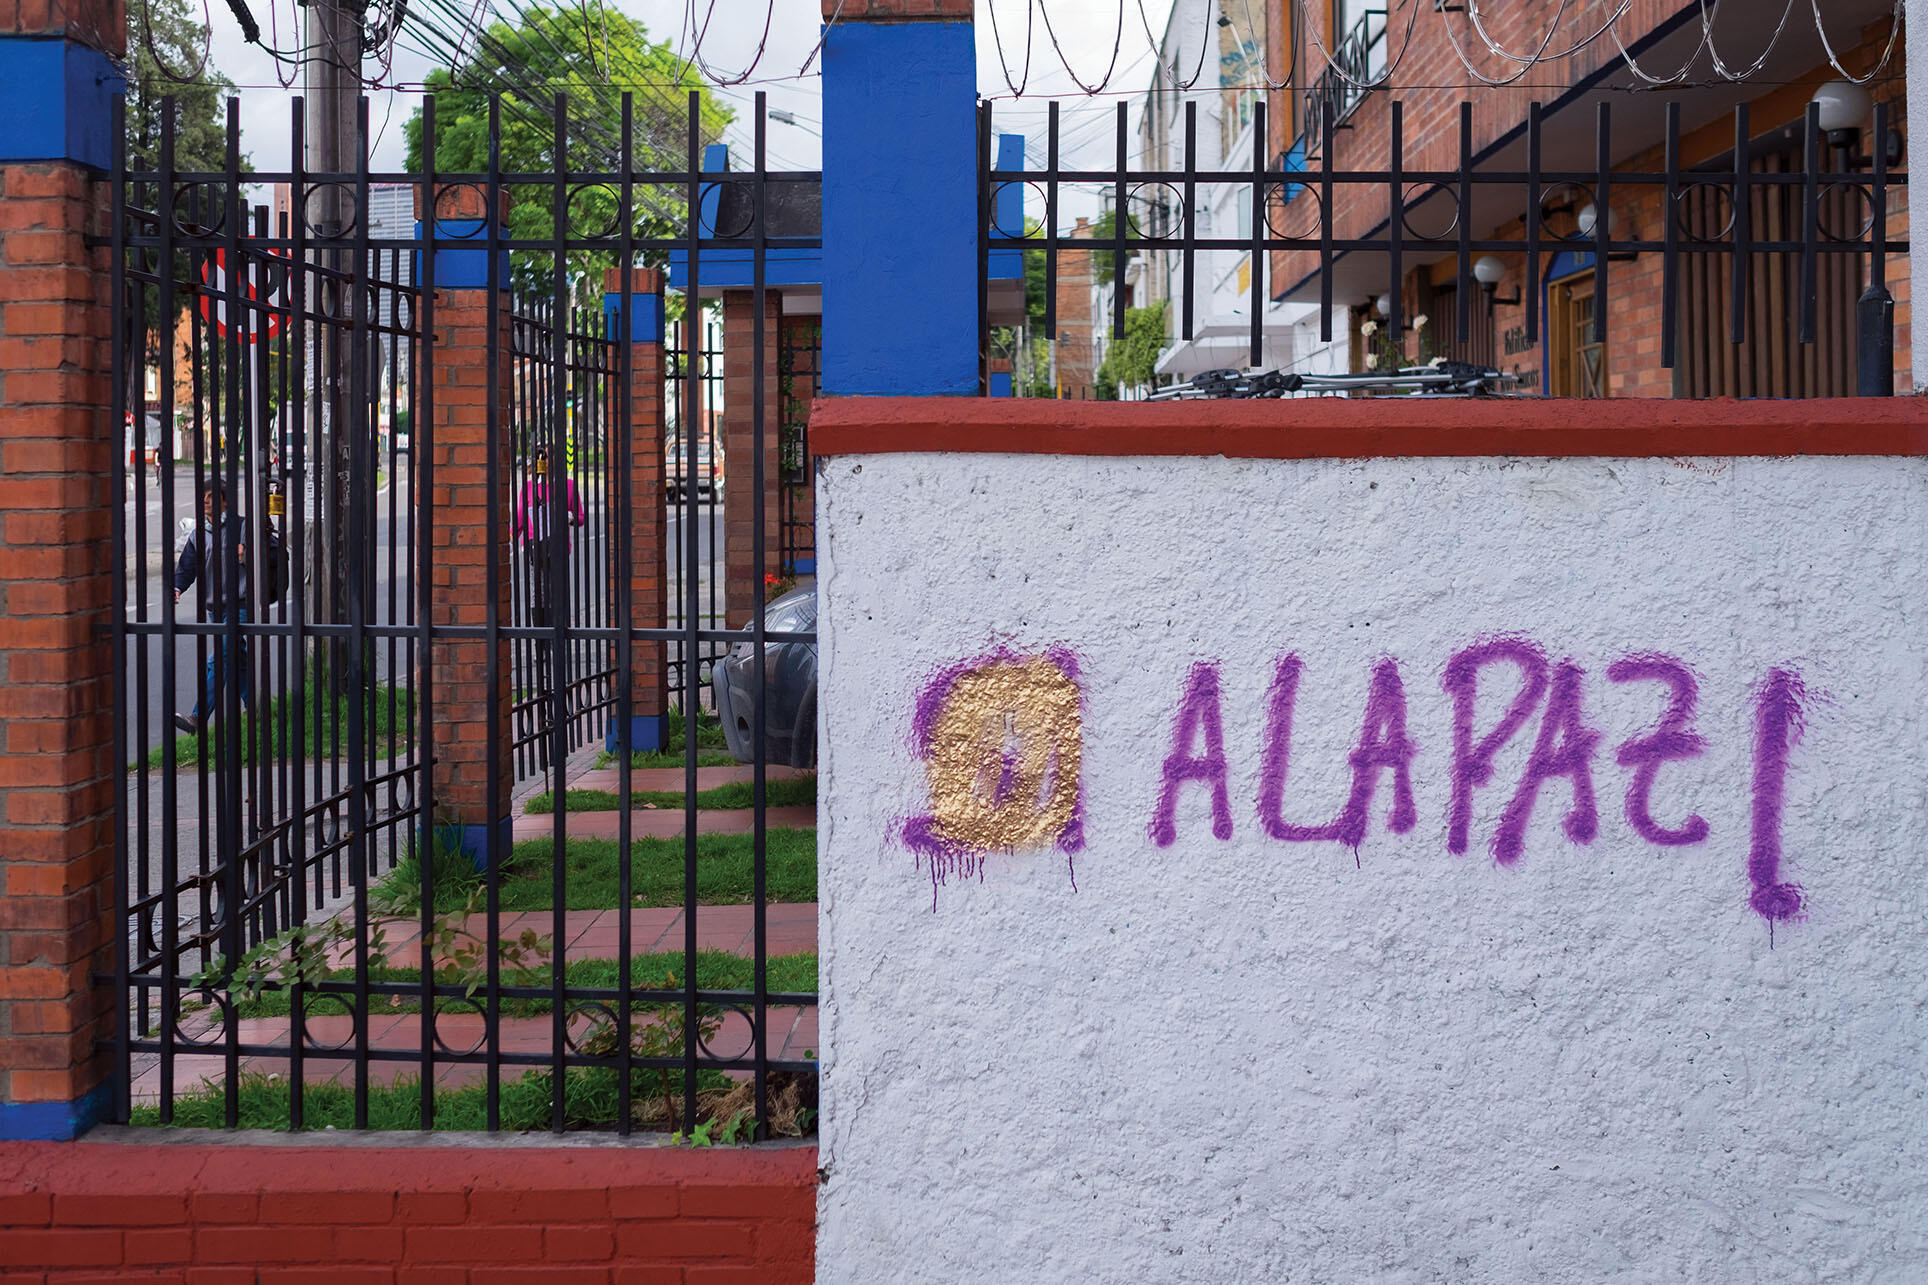 """Graffiti in Colombia after the failure of the plebiscite reads """"Si a la paz"""" with the """"si"""" marred by different paint. (Photo by Galo Naranjo.)"""